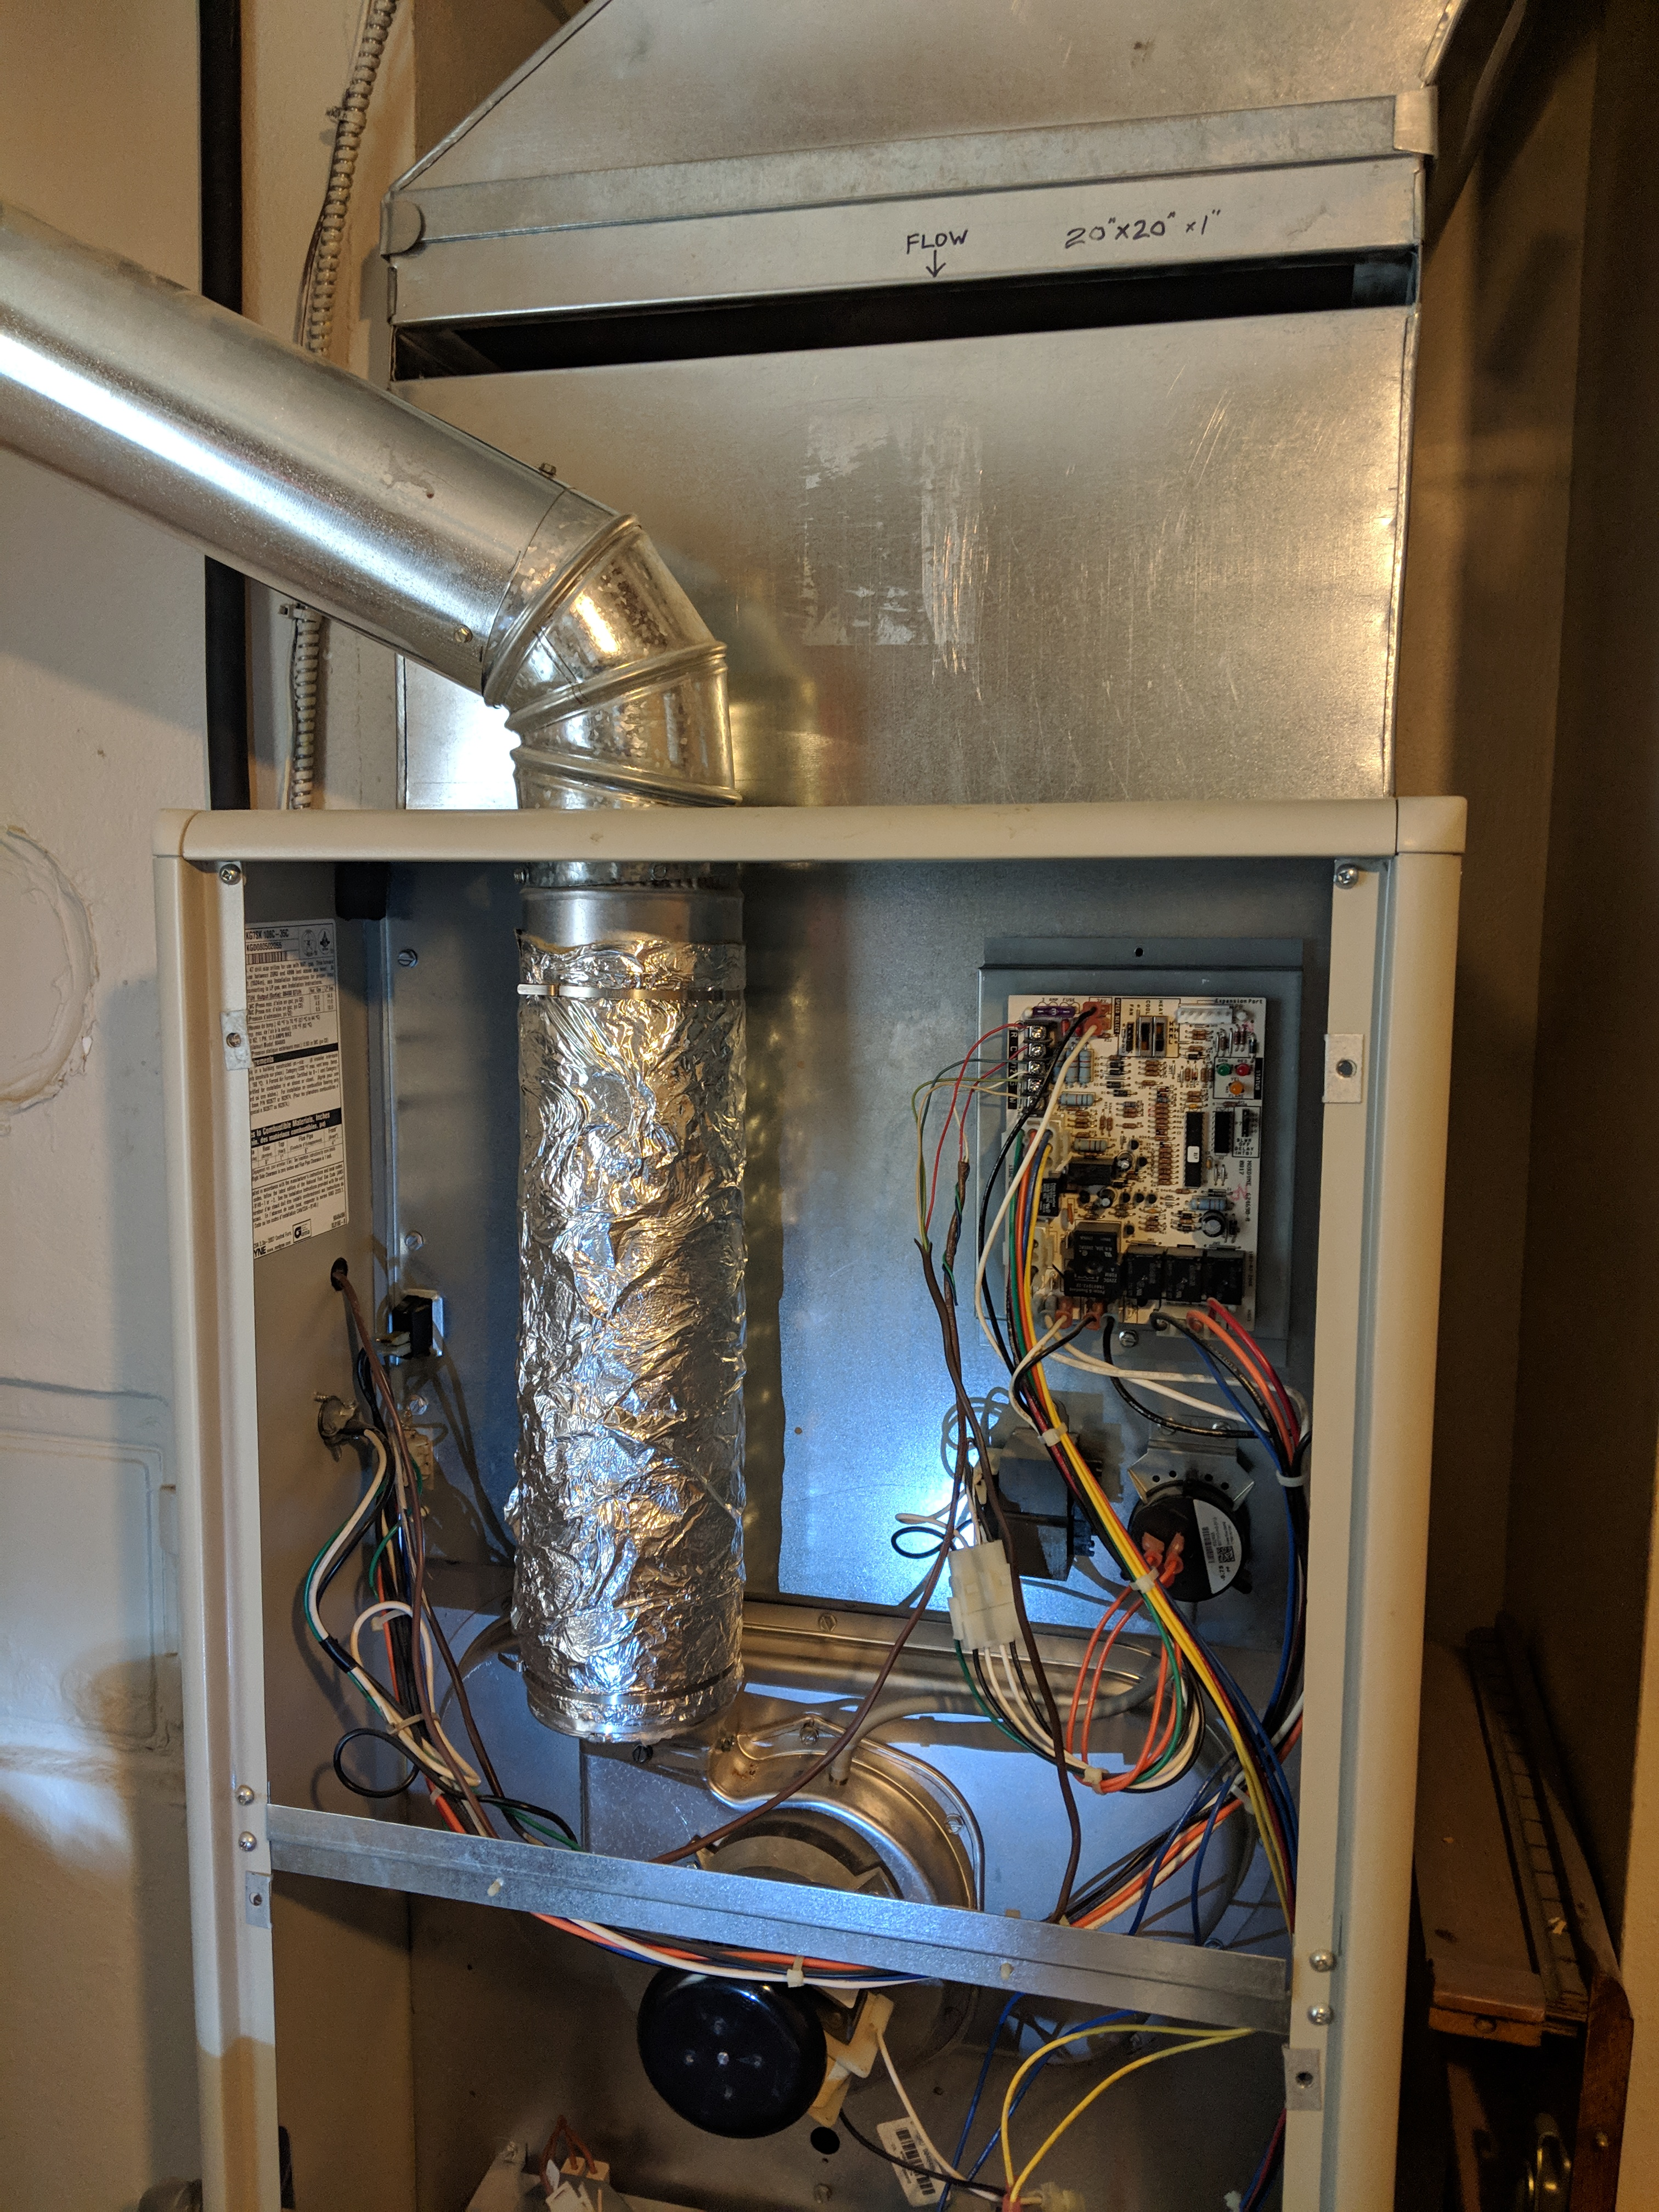 I Have A Limit Switch Fault On My Nordyne Furnace I Have